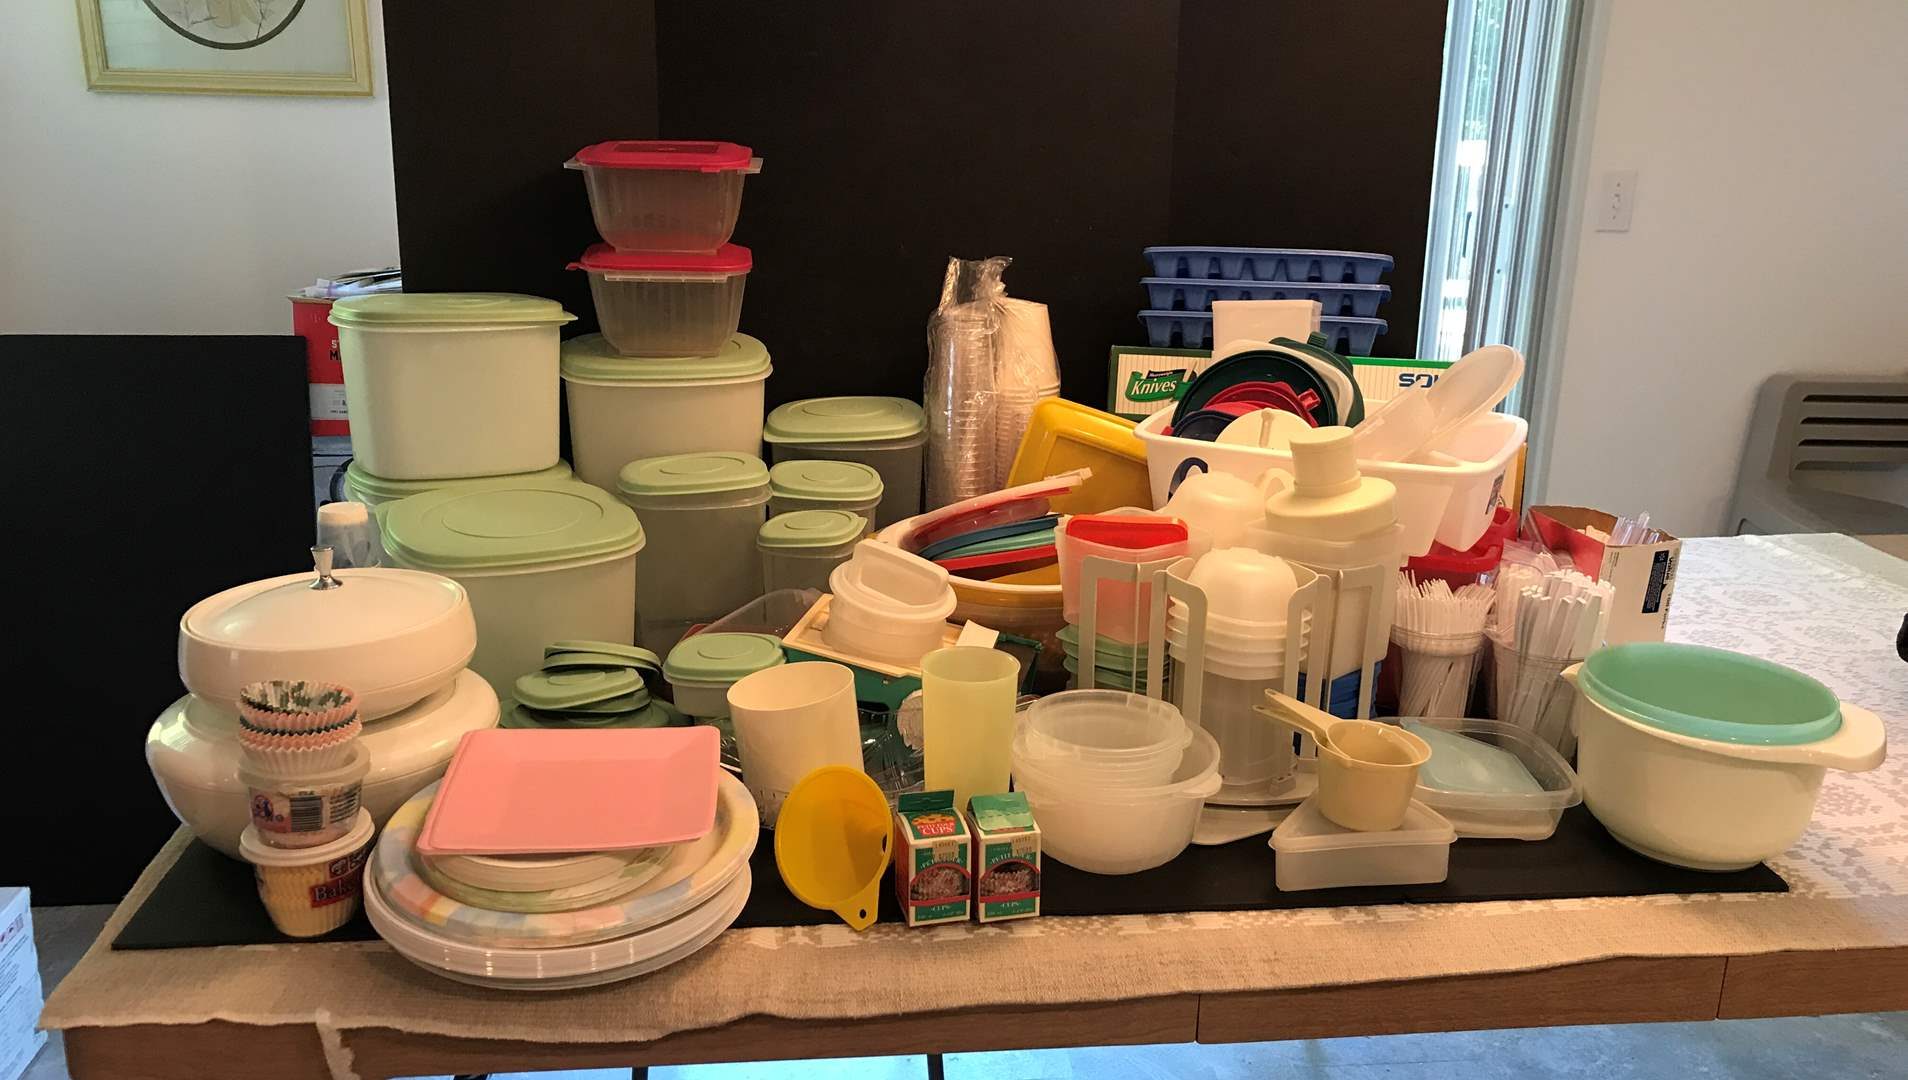 Lot # 70 - Large Lot Of Plastic Items: Spoons, Forks, Food Storage, Cups & More (main image)